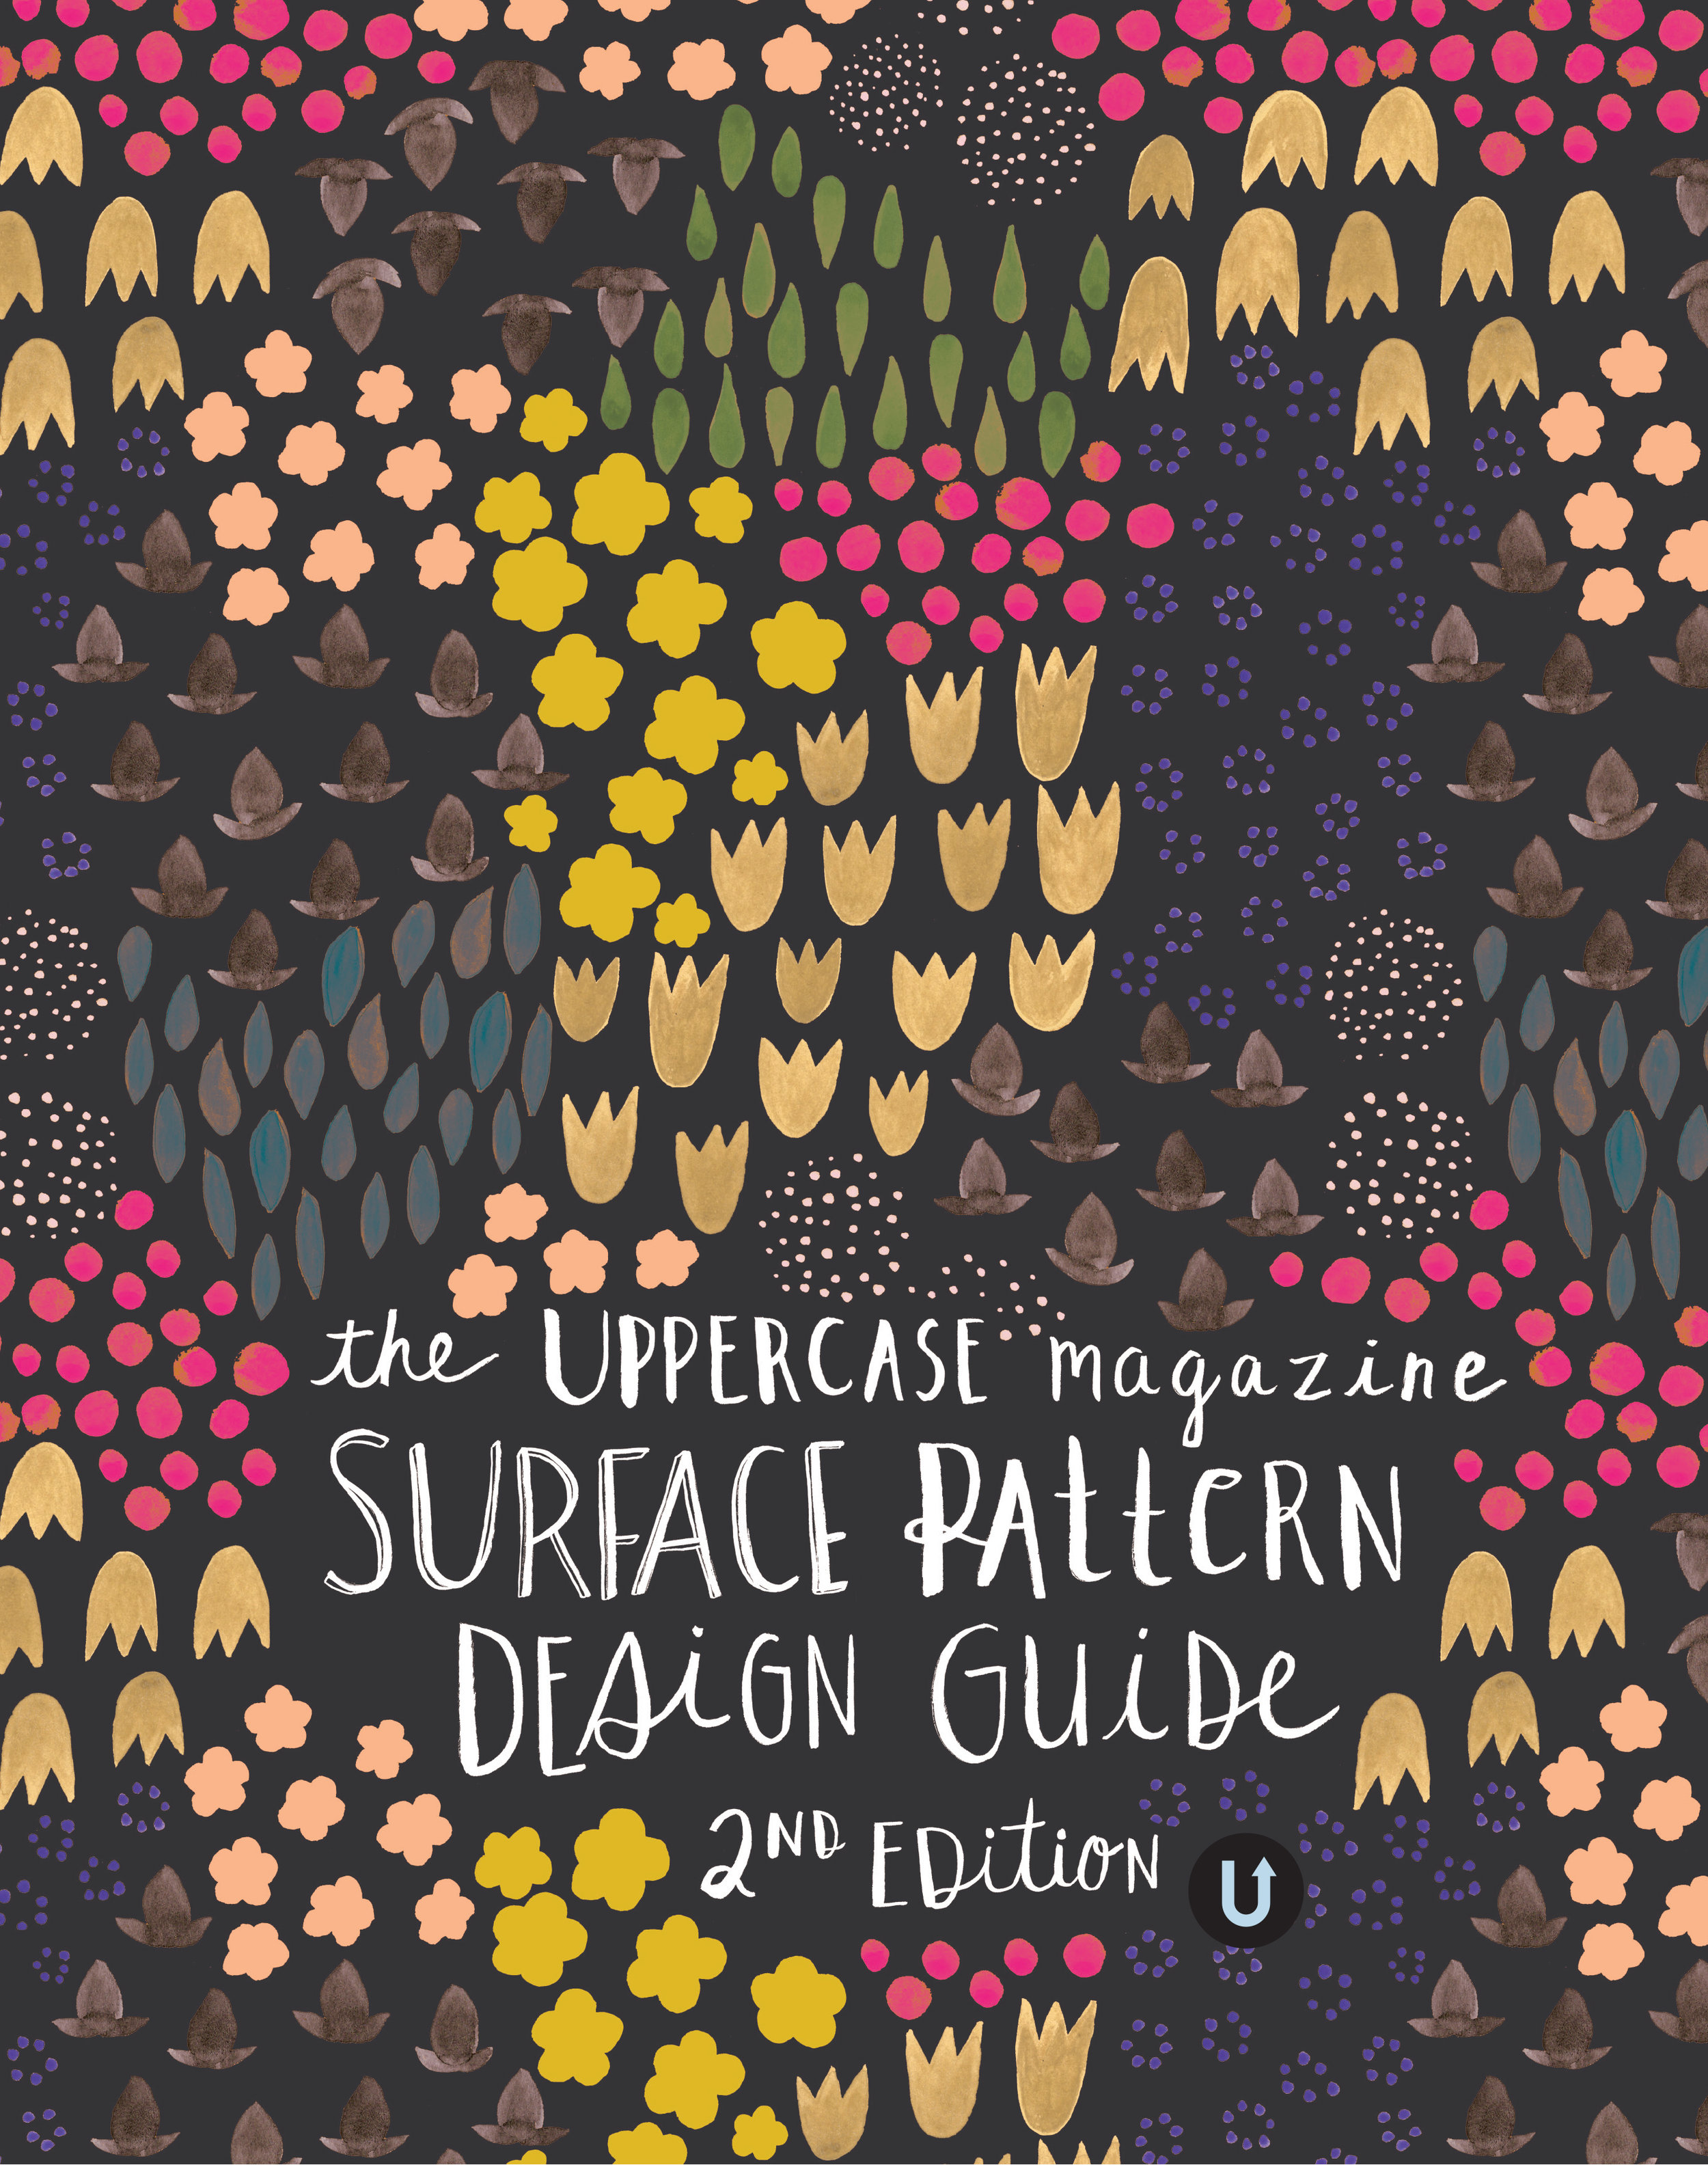 The title page for the UPPERCASE Surface Pattern Design Guide, 2nd Edition, is illustrated by Sarah Golden. Look for the Guide as part of UPPERCASE issue 32 (Jan/Feb/March 2017).